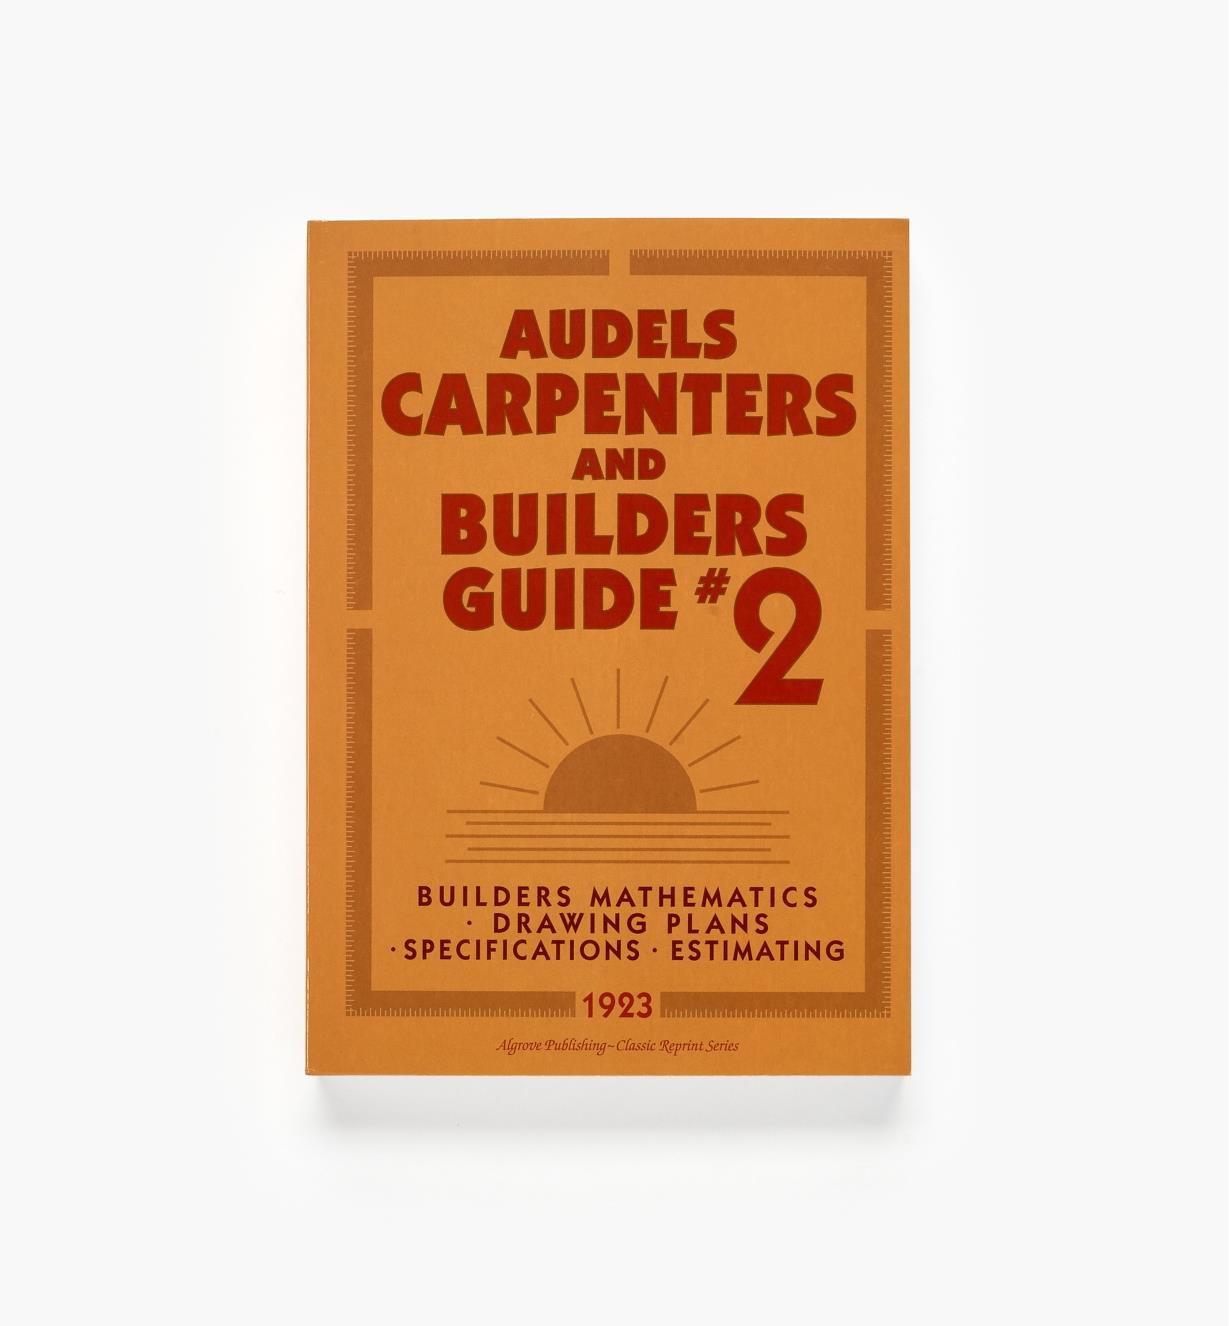 49L8137 - Audels Carpenters and Builders Guide, Vols. 1 4